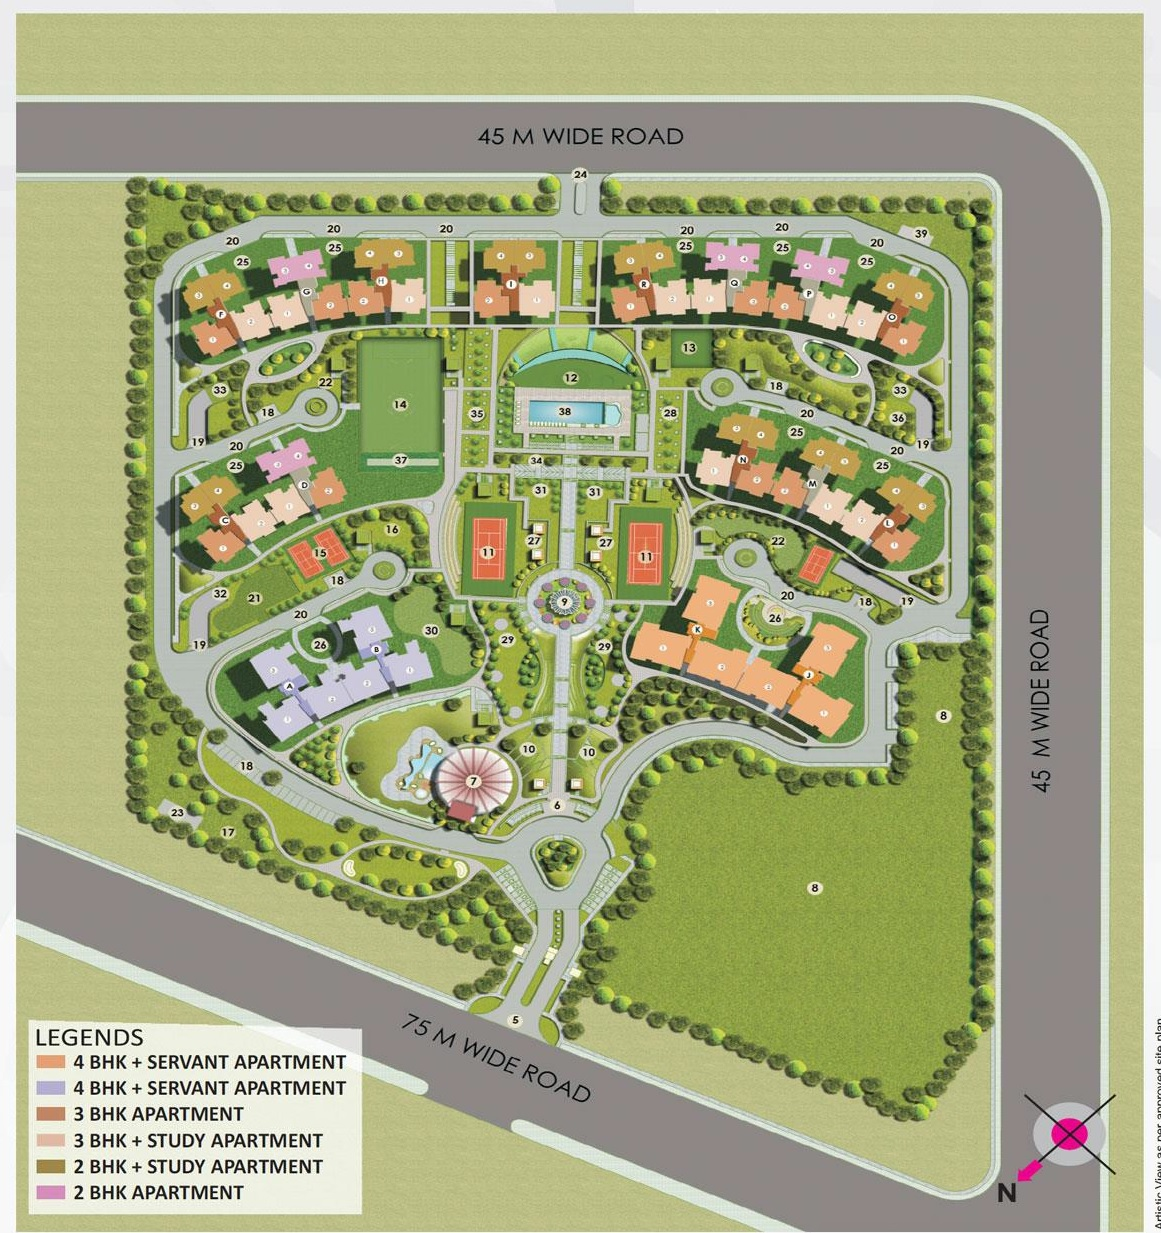 master-plan-image-Picture-great-value-sharanam-2759212